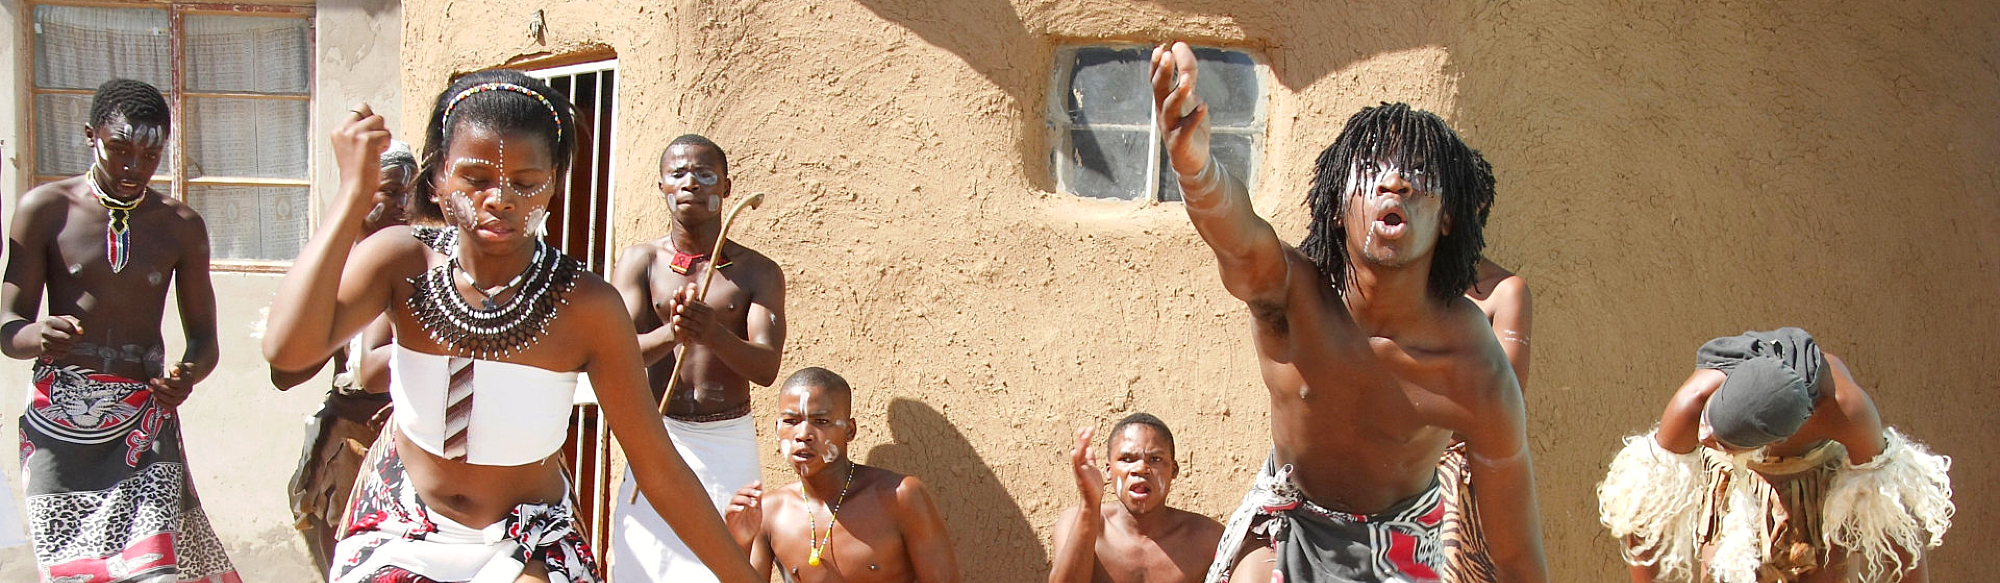 african people doing their ritual